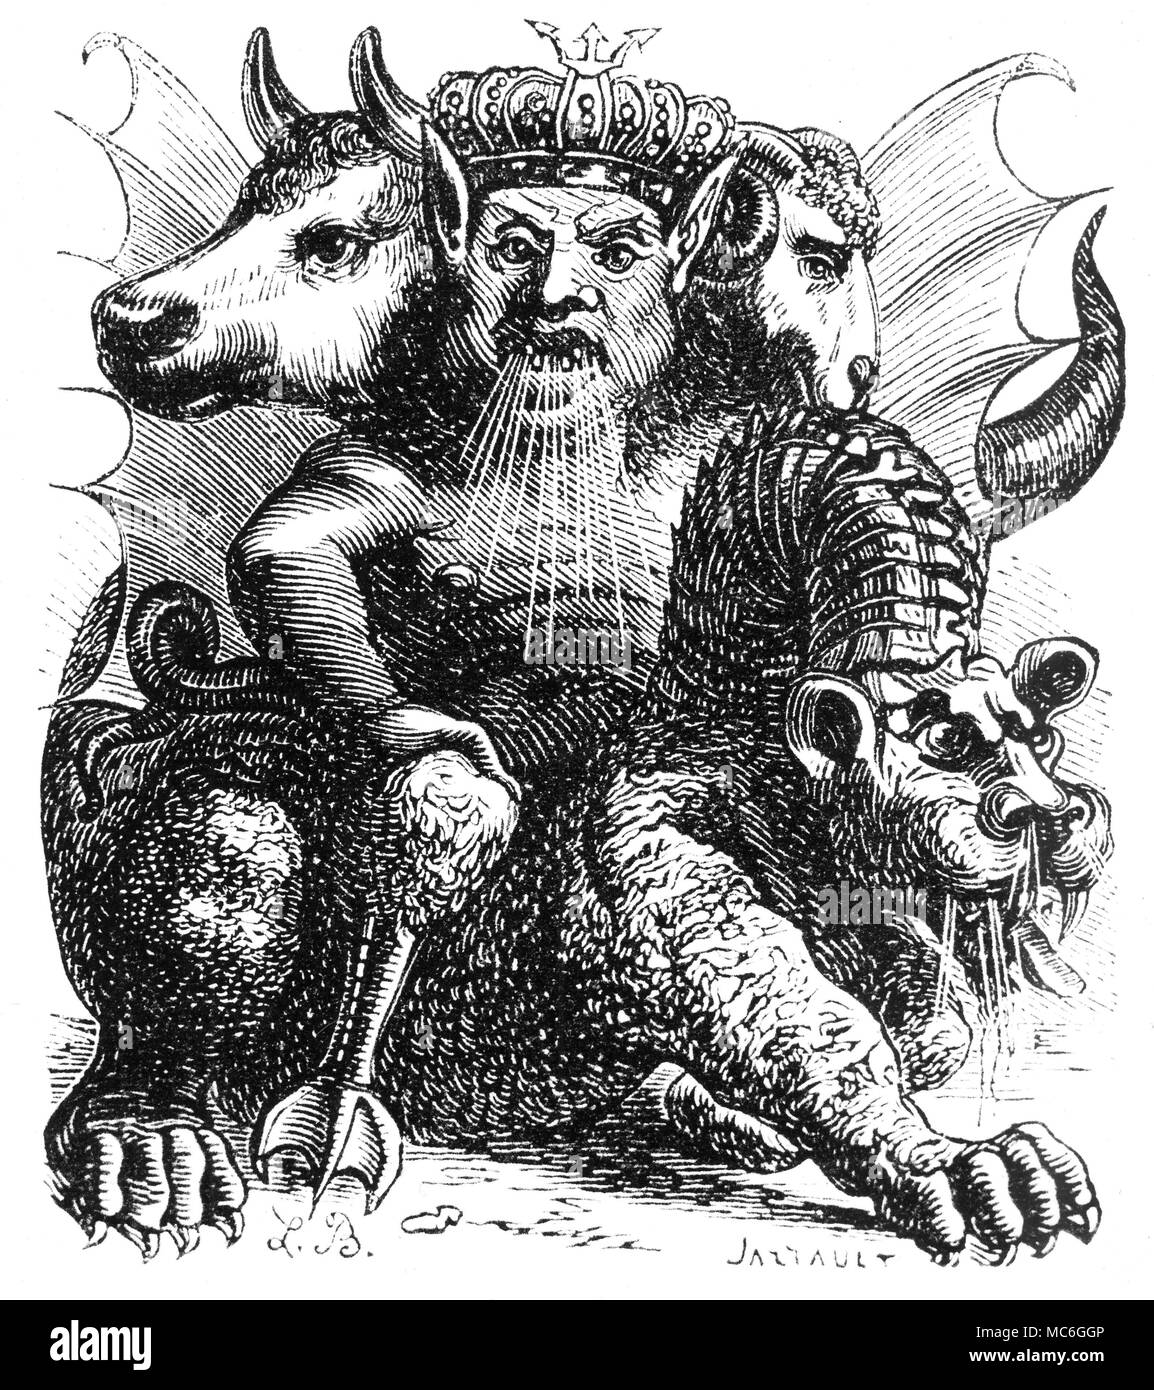 DEMONS - ASMODEUS Described as a 'destructive demon', Asmodeus is supposed to spread dissipation and terror among humans:  he is credited with being the tempter of Eve.  He is supposed to have been forced to help Solomon build the Temple in Jerusalem.  When conjured, he is able to grant the power of invisibility and is reputed to t each the secrets of mathematics, astronomy and the mechanical arts.  He appears riding a monster, and has the head of a king, the head of an ox and the head of a Ram. His picture is from the 1863 edition of Collin de Plancy, Dictionnaire Infernal. Stock Photo